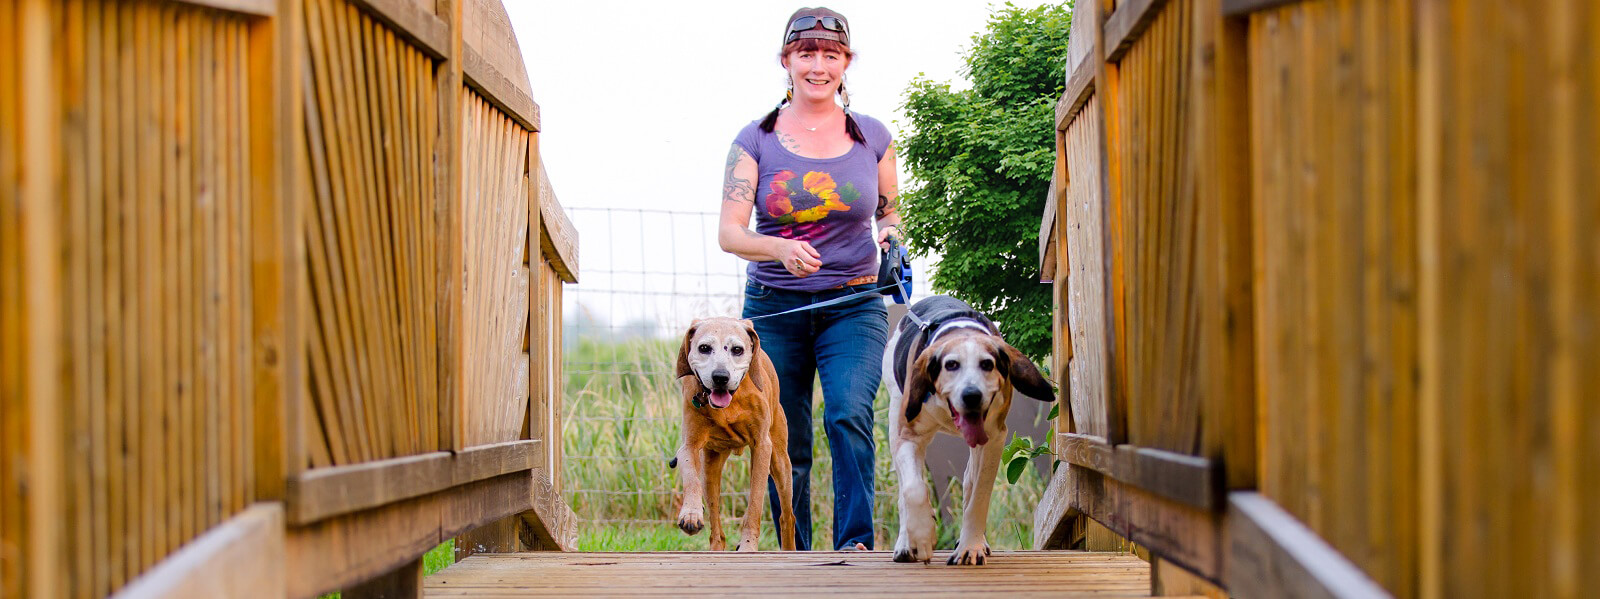 dog walking service in Oakville